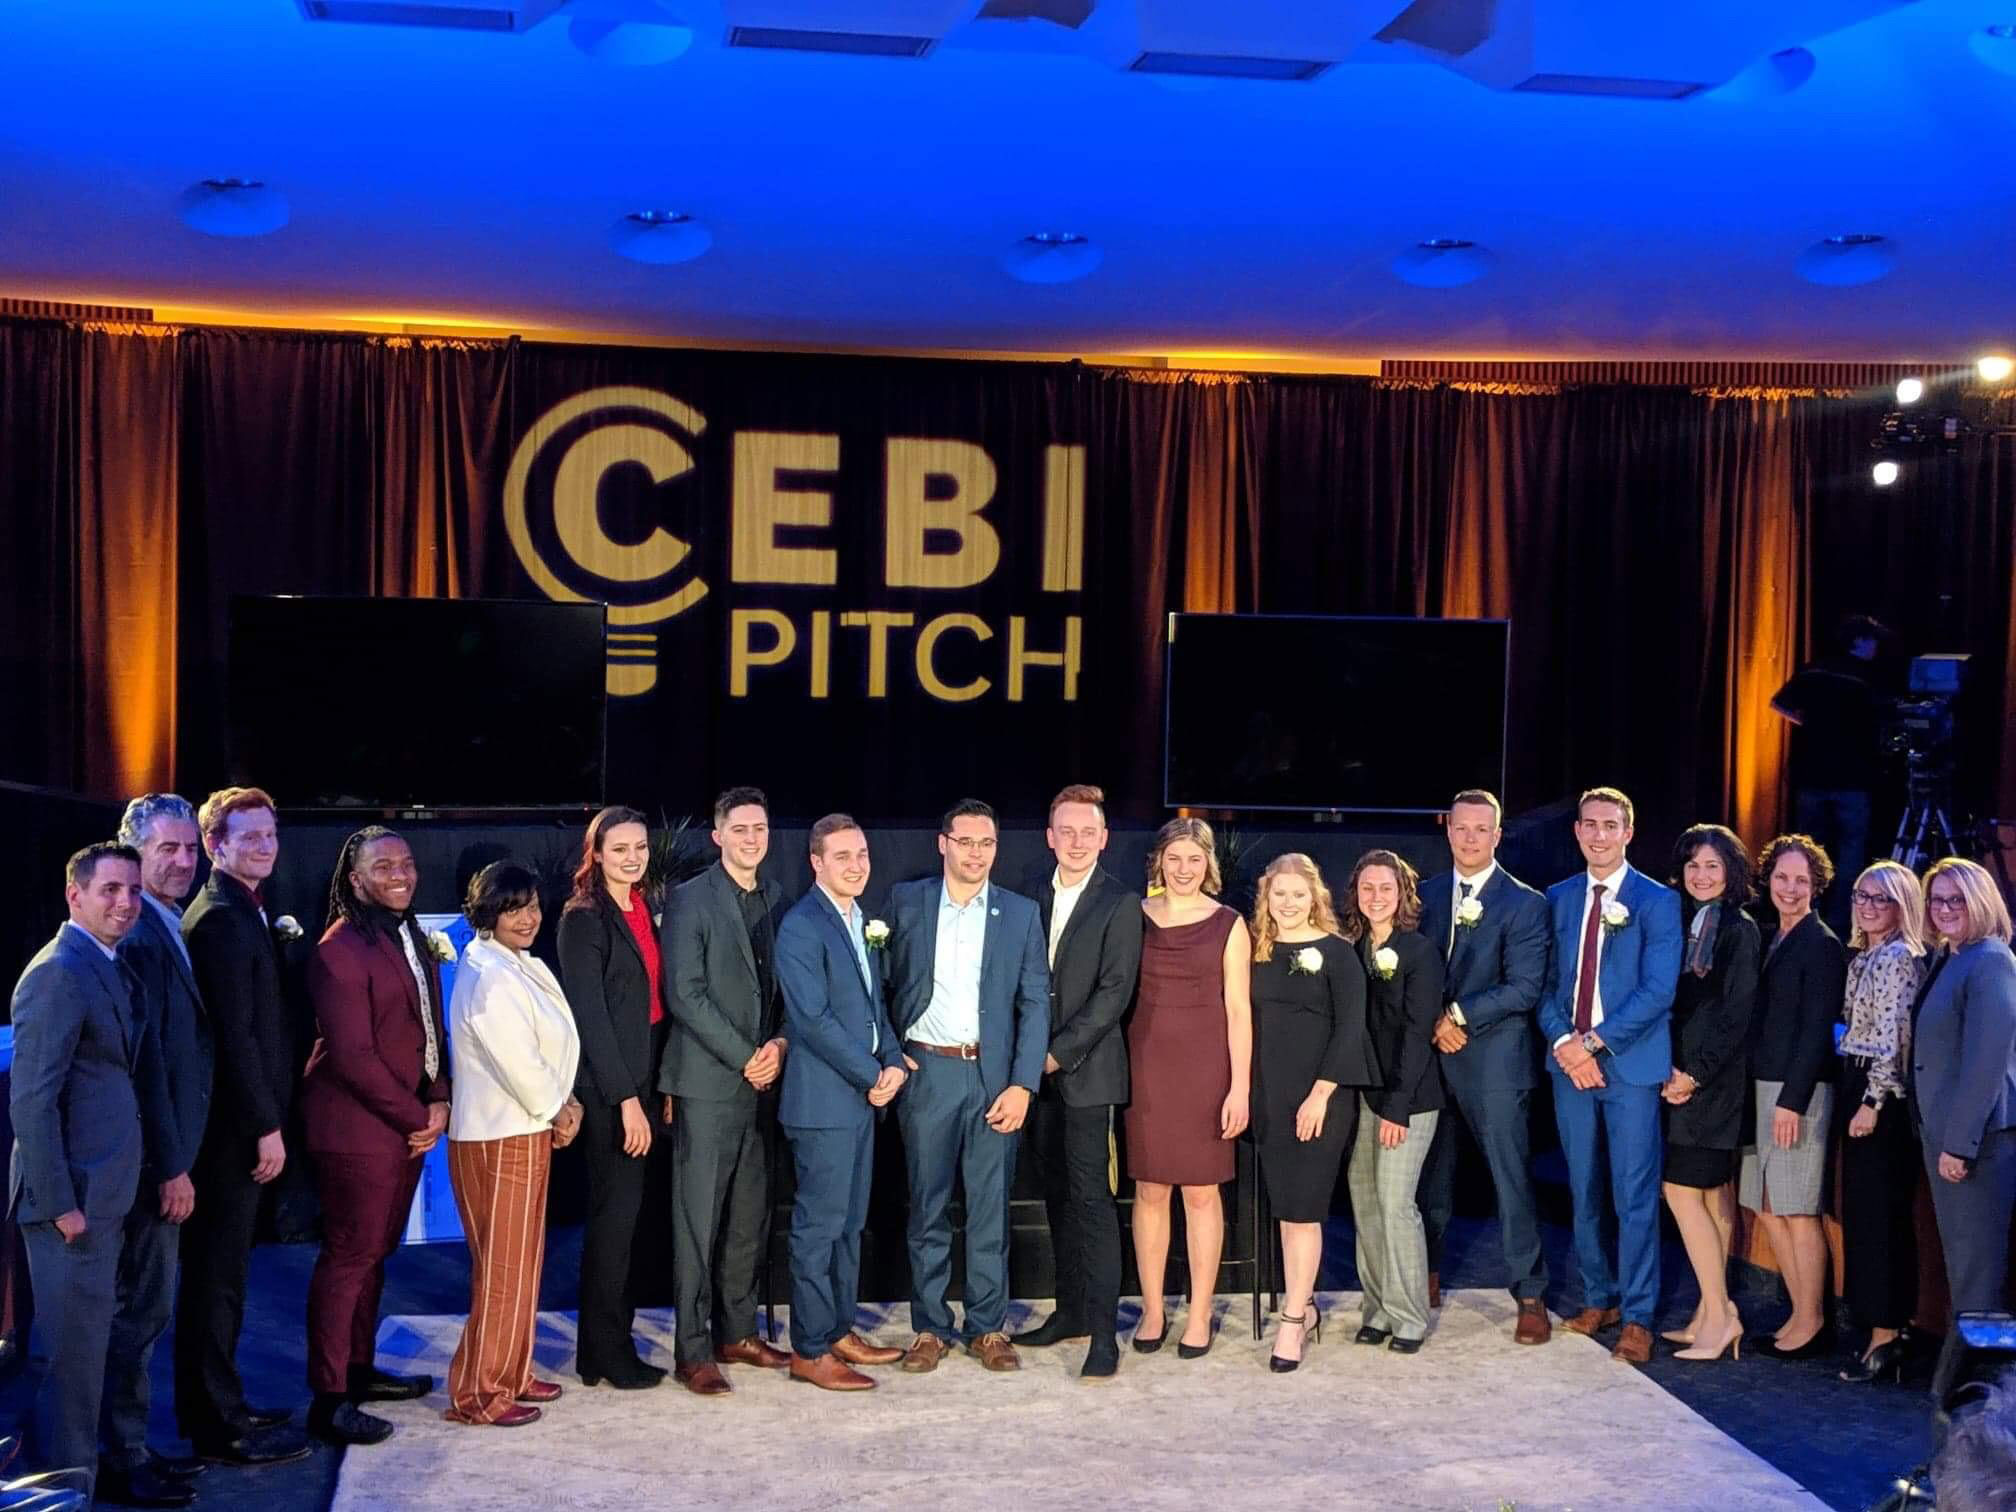 College of Business students at the CEBI Pitch competition, posed and smiling for the camera